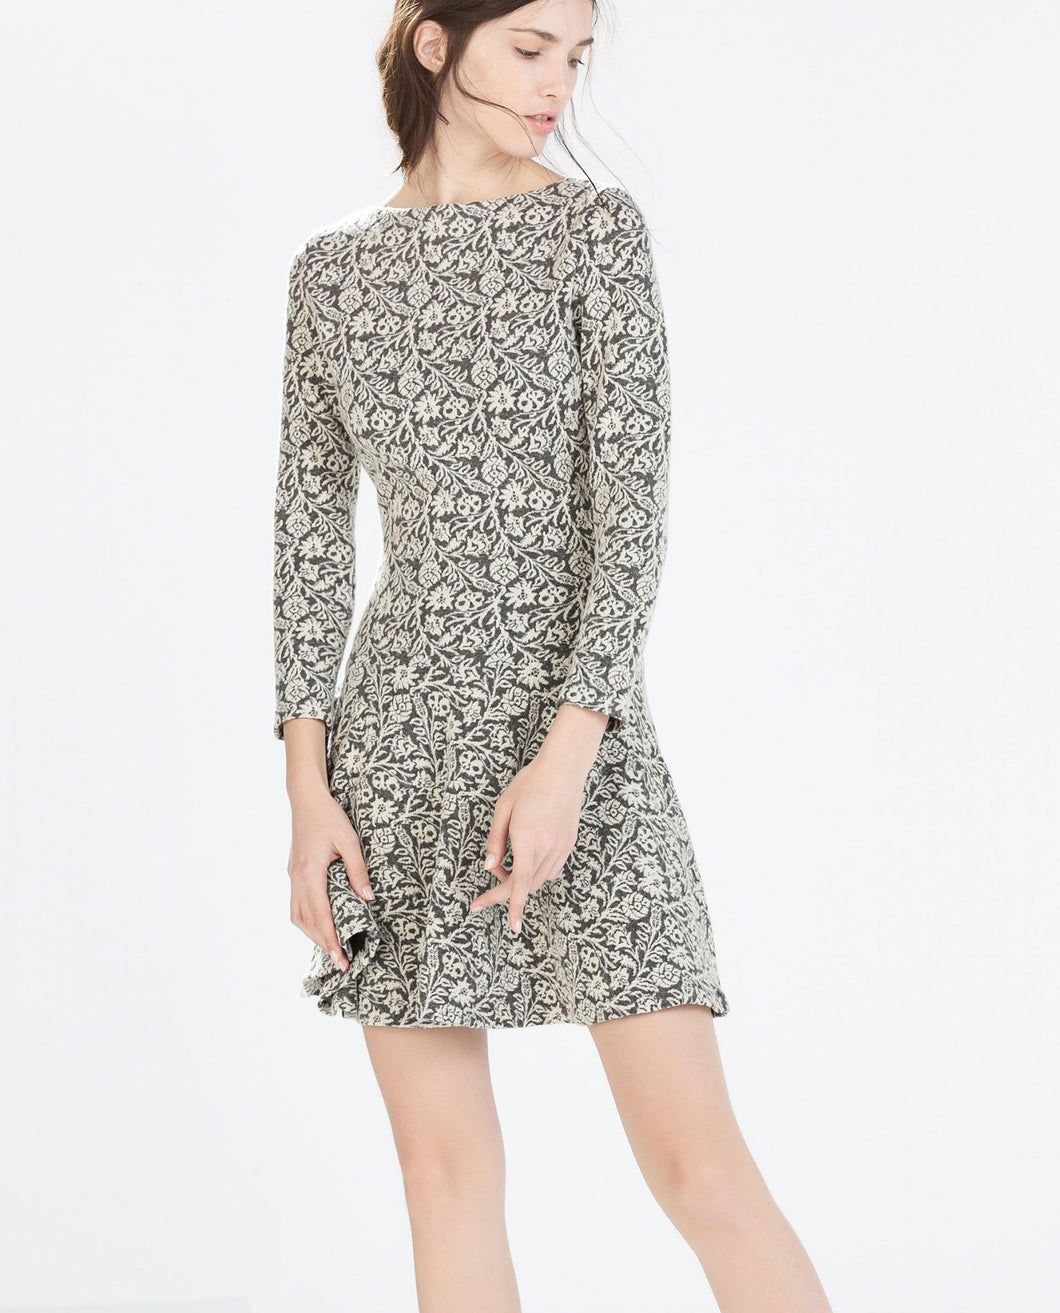 Wool Jacquard Skater Dress by Zara - okriks-market